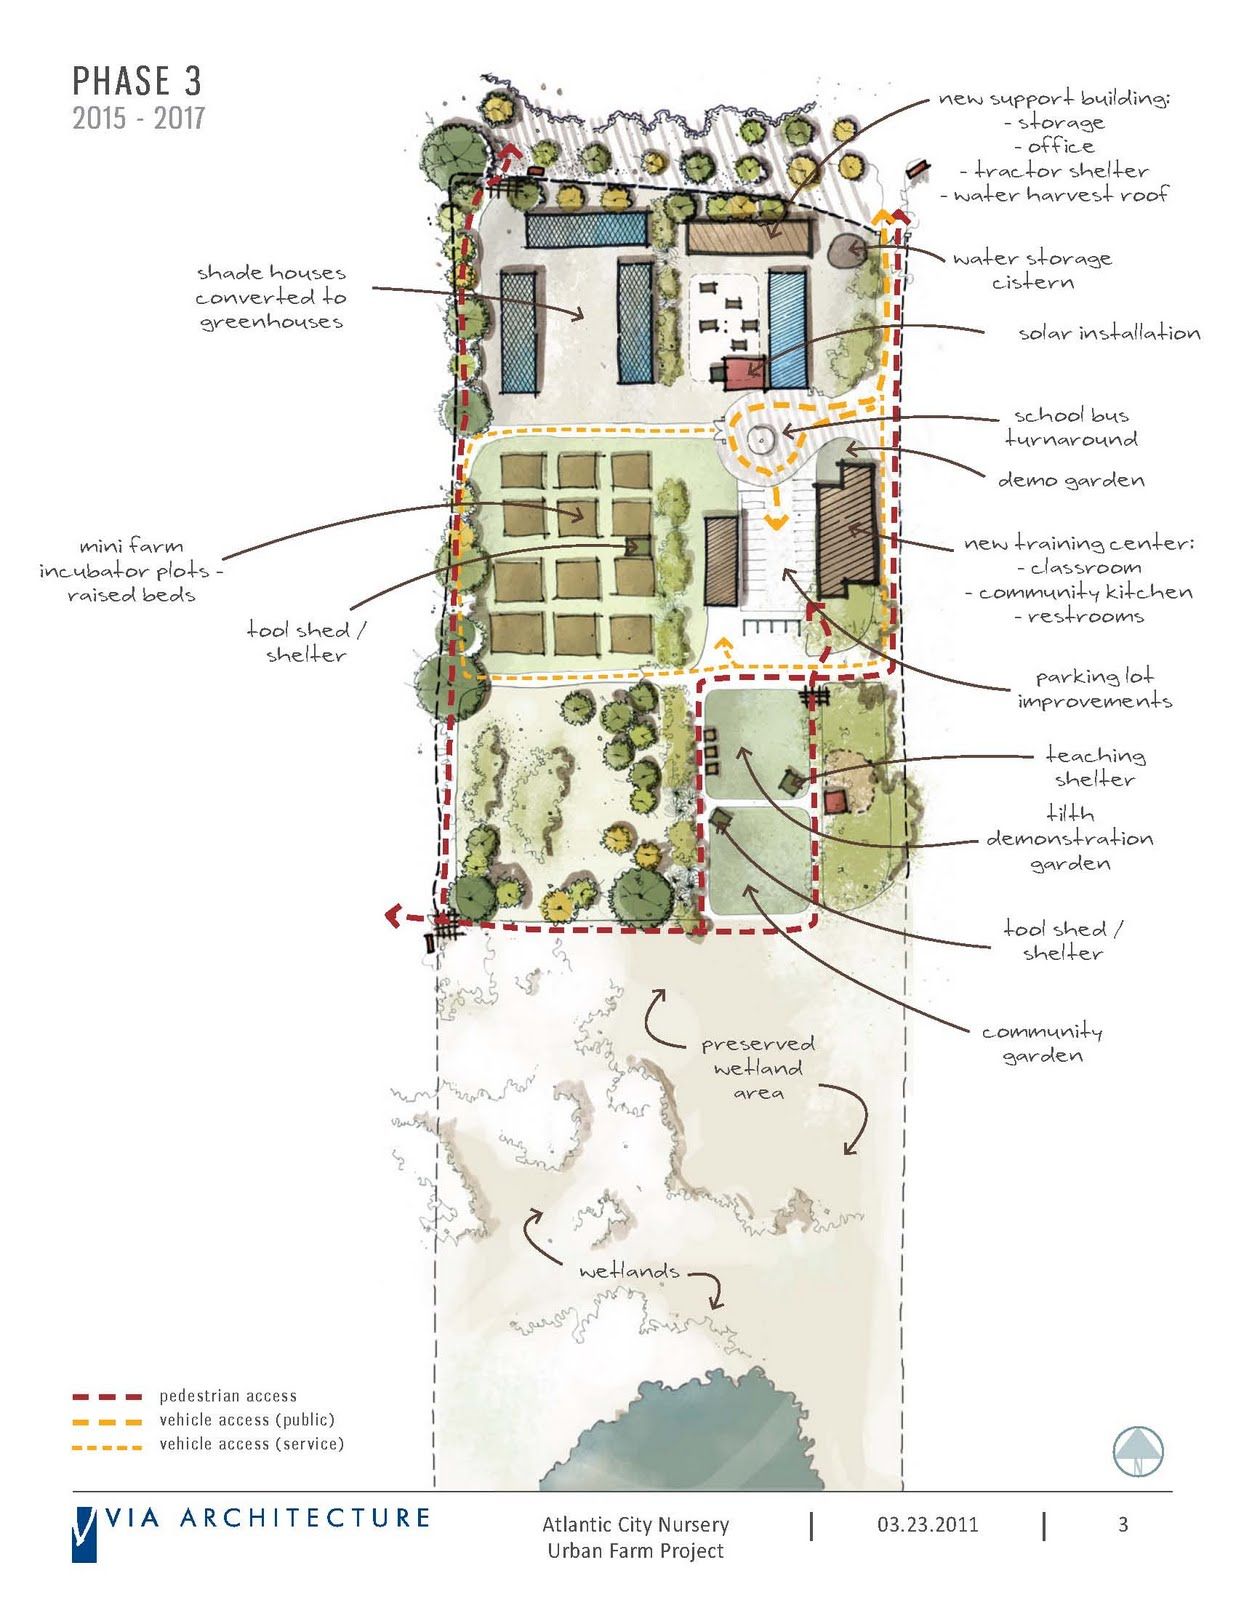 Announcing our new community design studio 1 acre farm layout